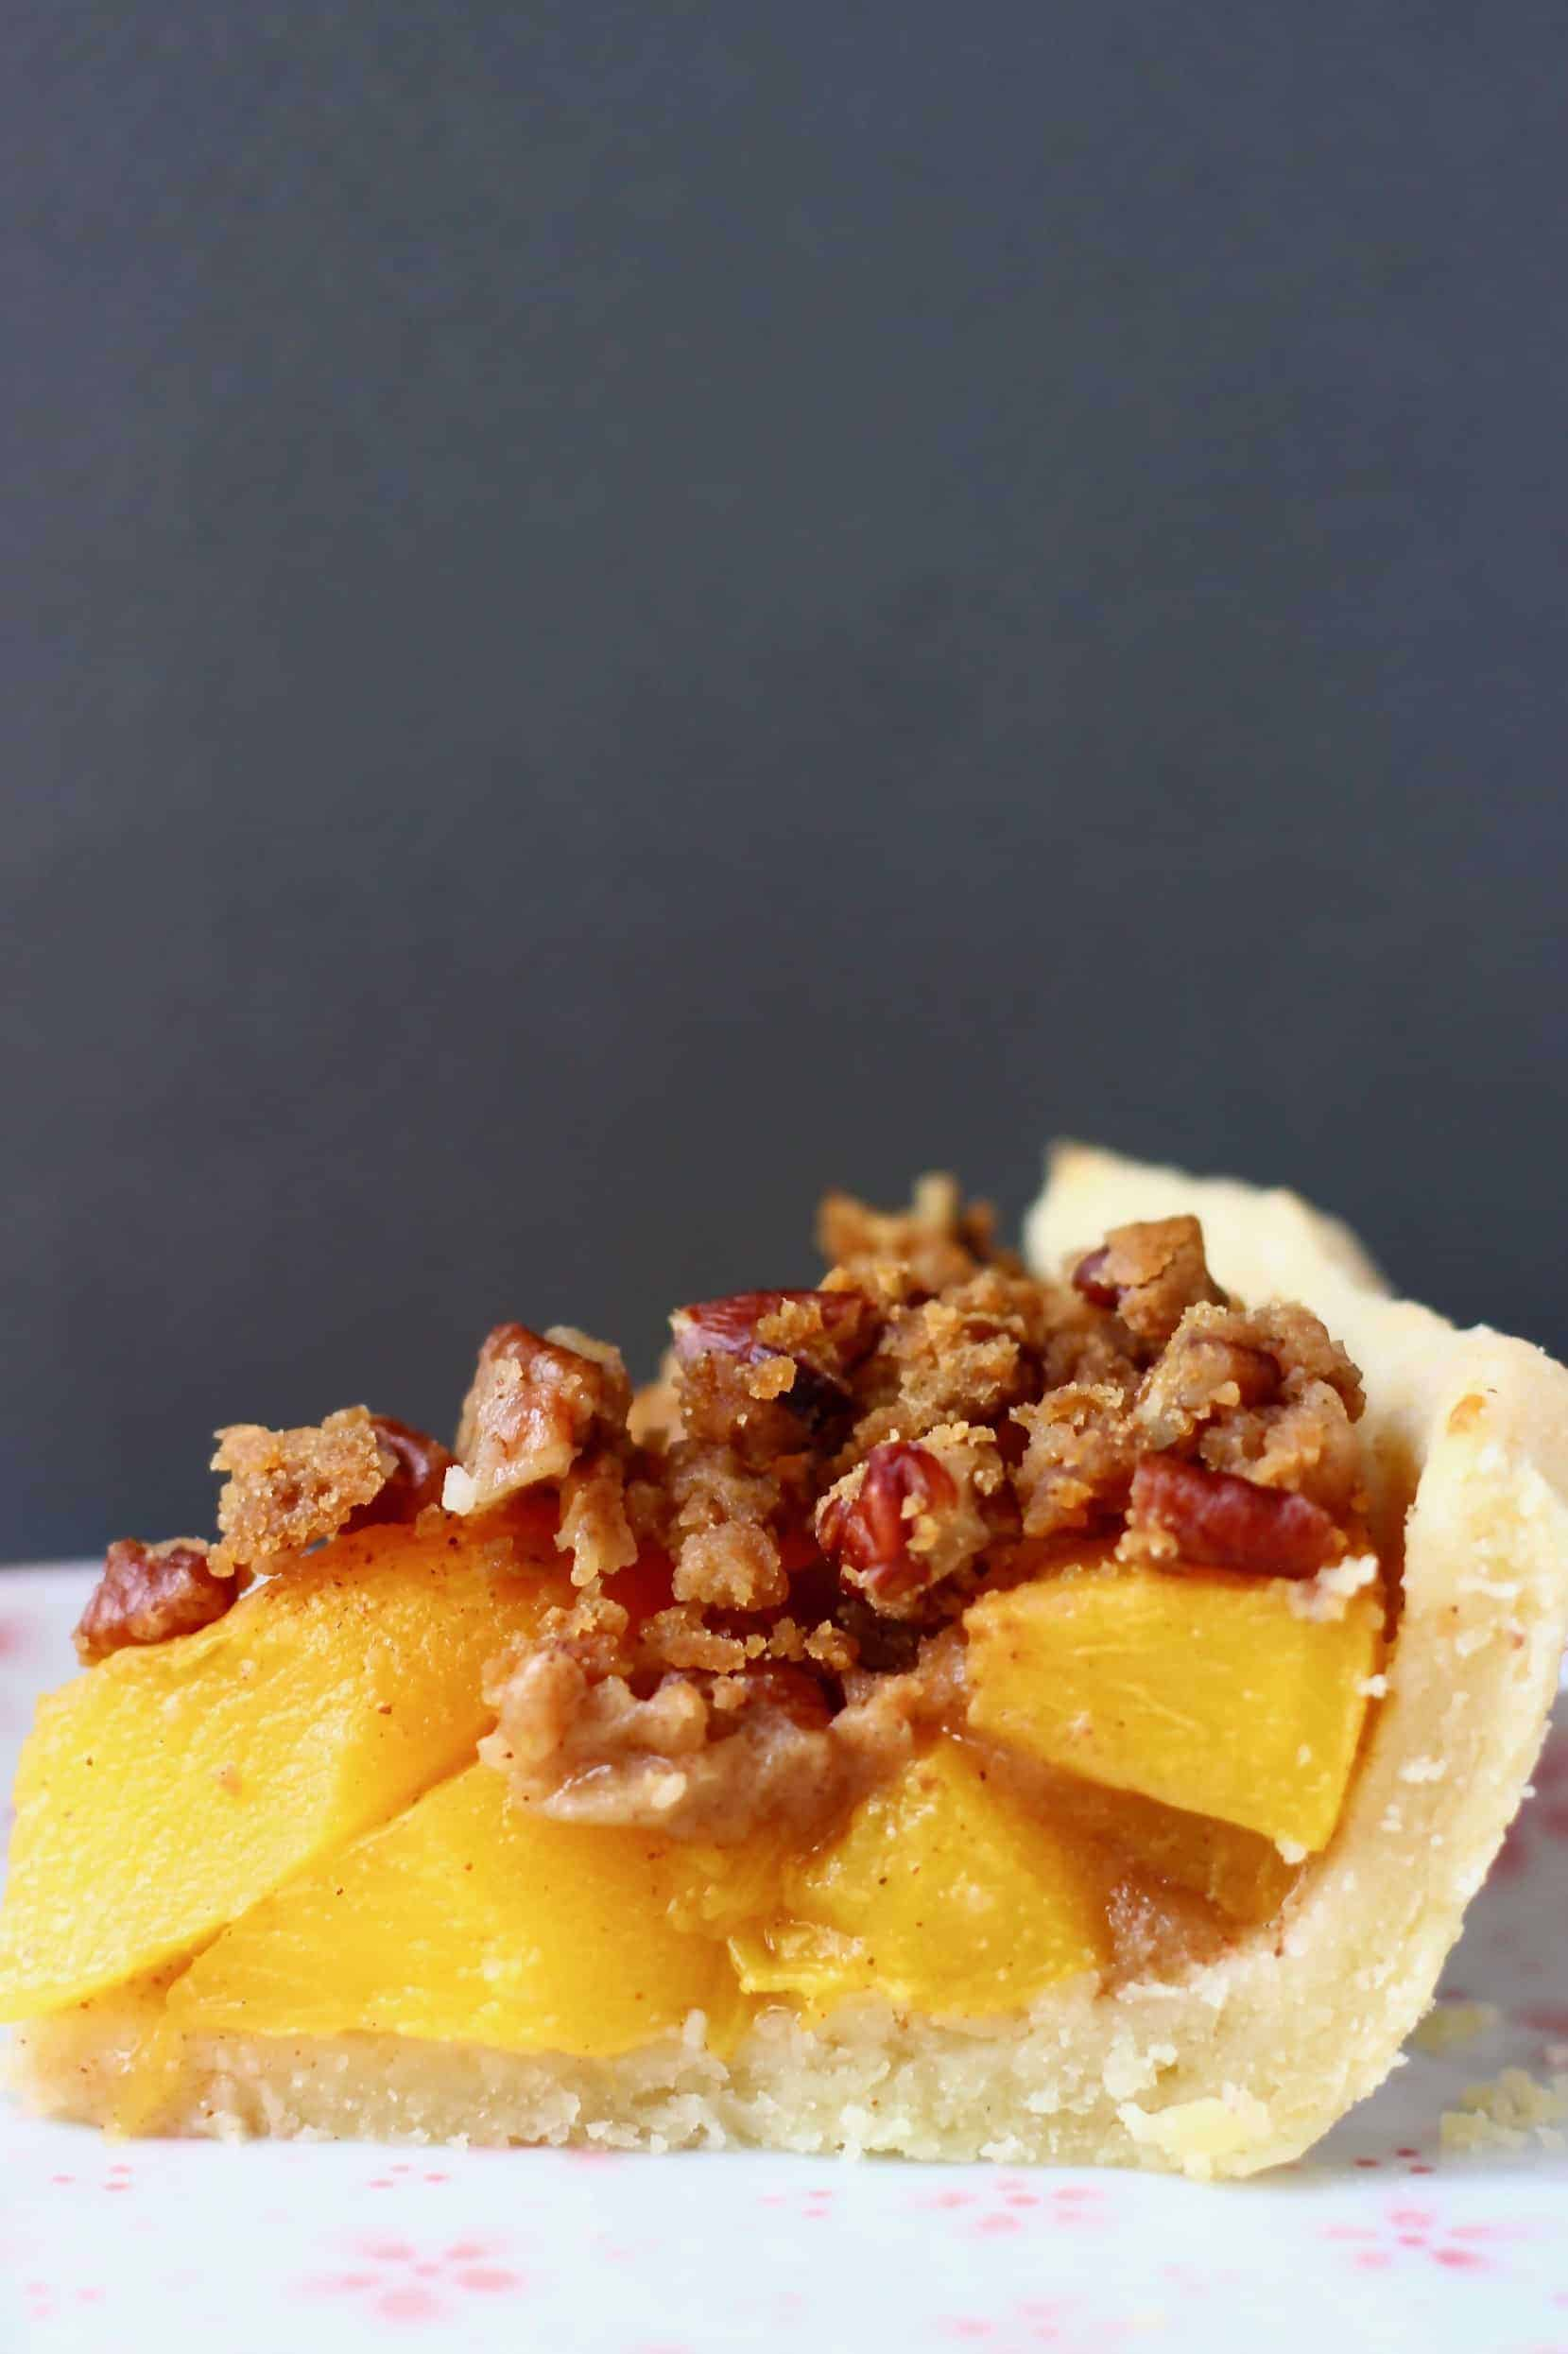 A slice of vegan peach pie topped with brown crumble topping on a white plate